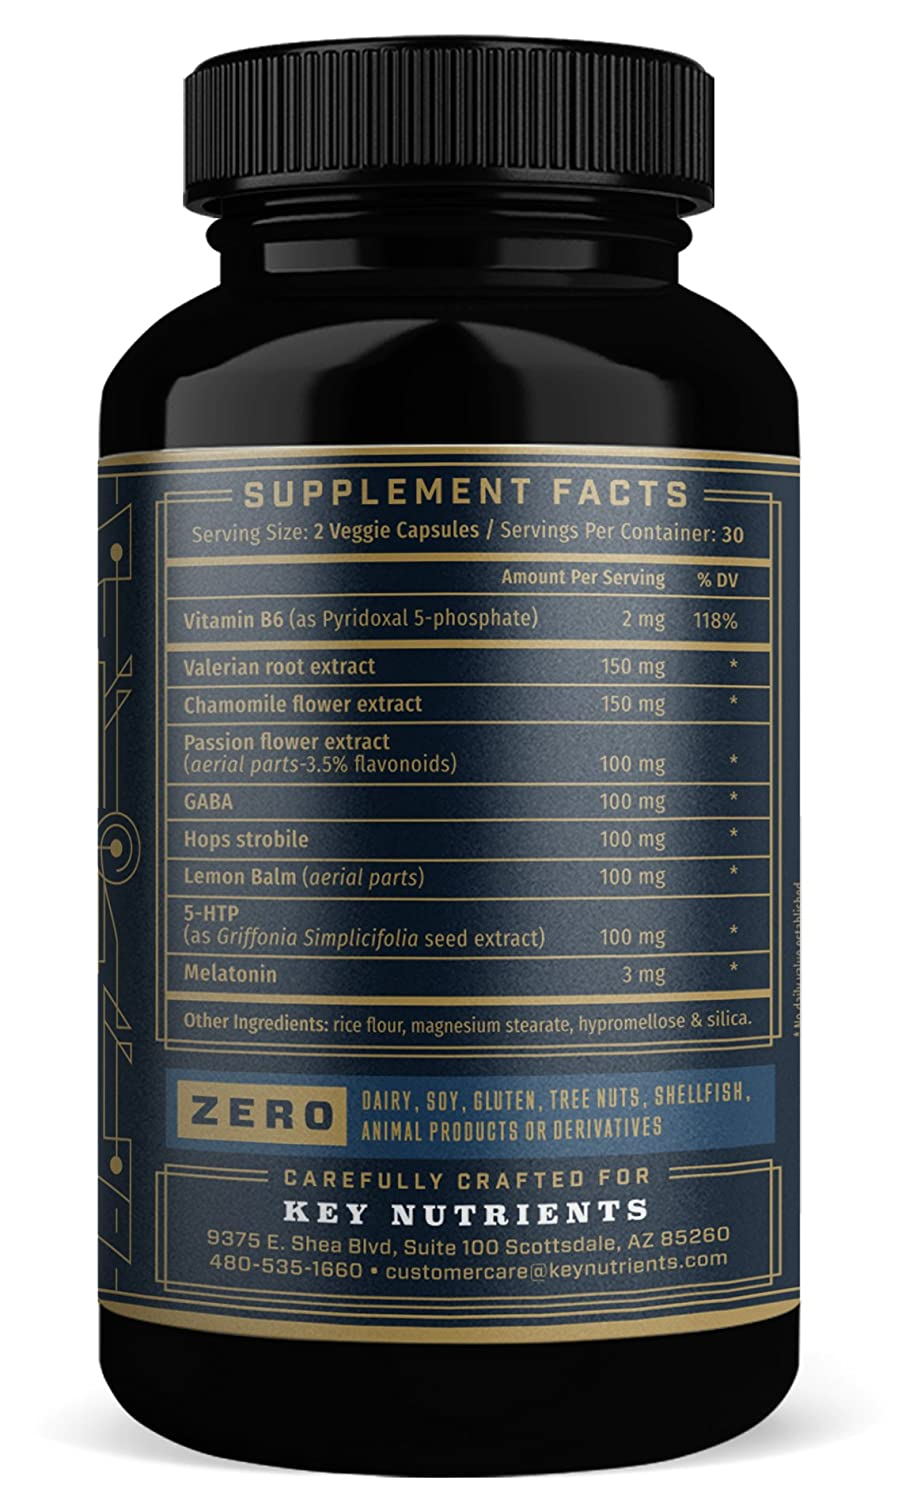 Natural Sleep Aid, Lights Out: Contains Melatonin, Valerian, Passion Flower, More. 60 Sleeping Pills, Veggie Capsules, Non-Habit Forming Sleep ...